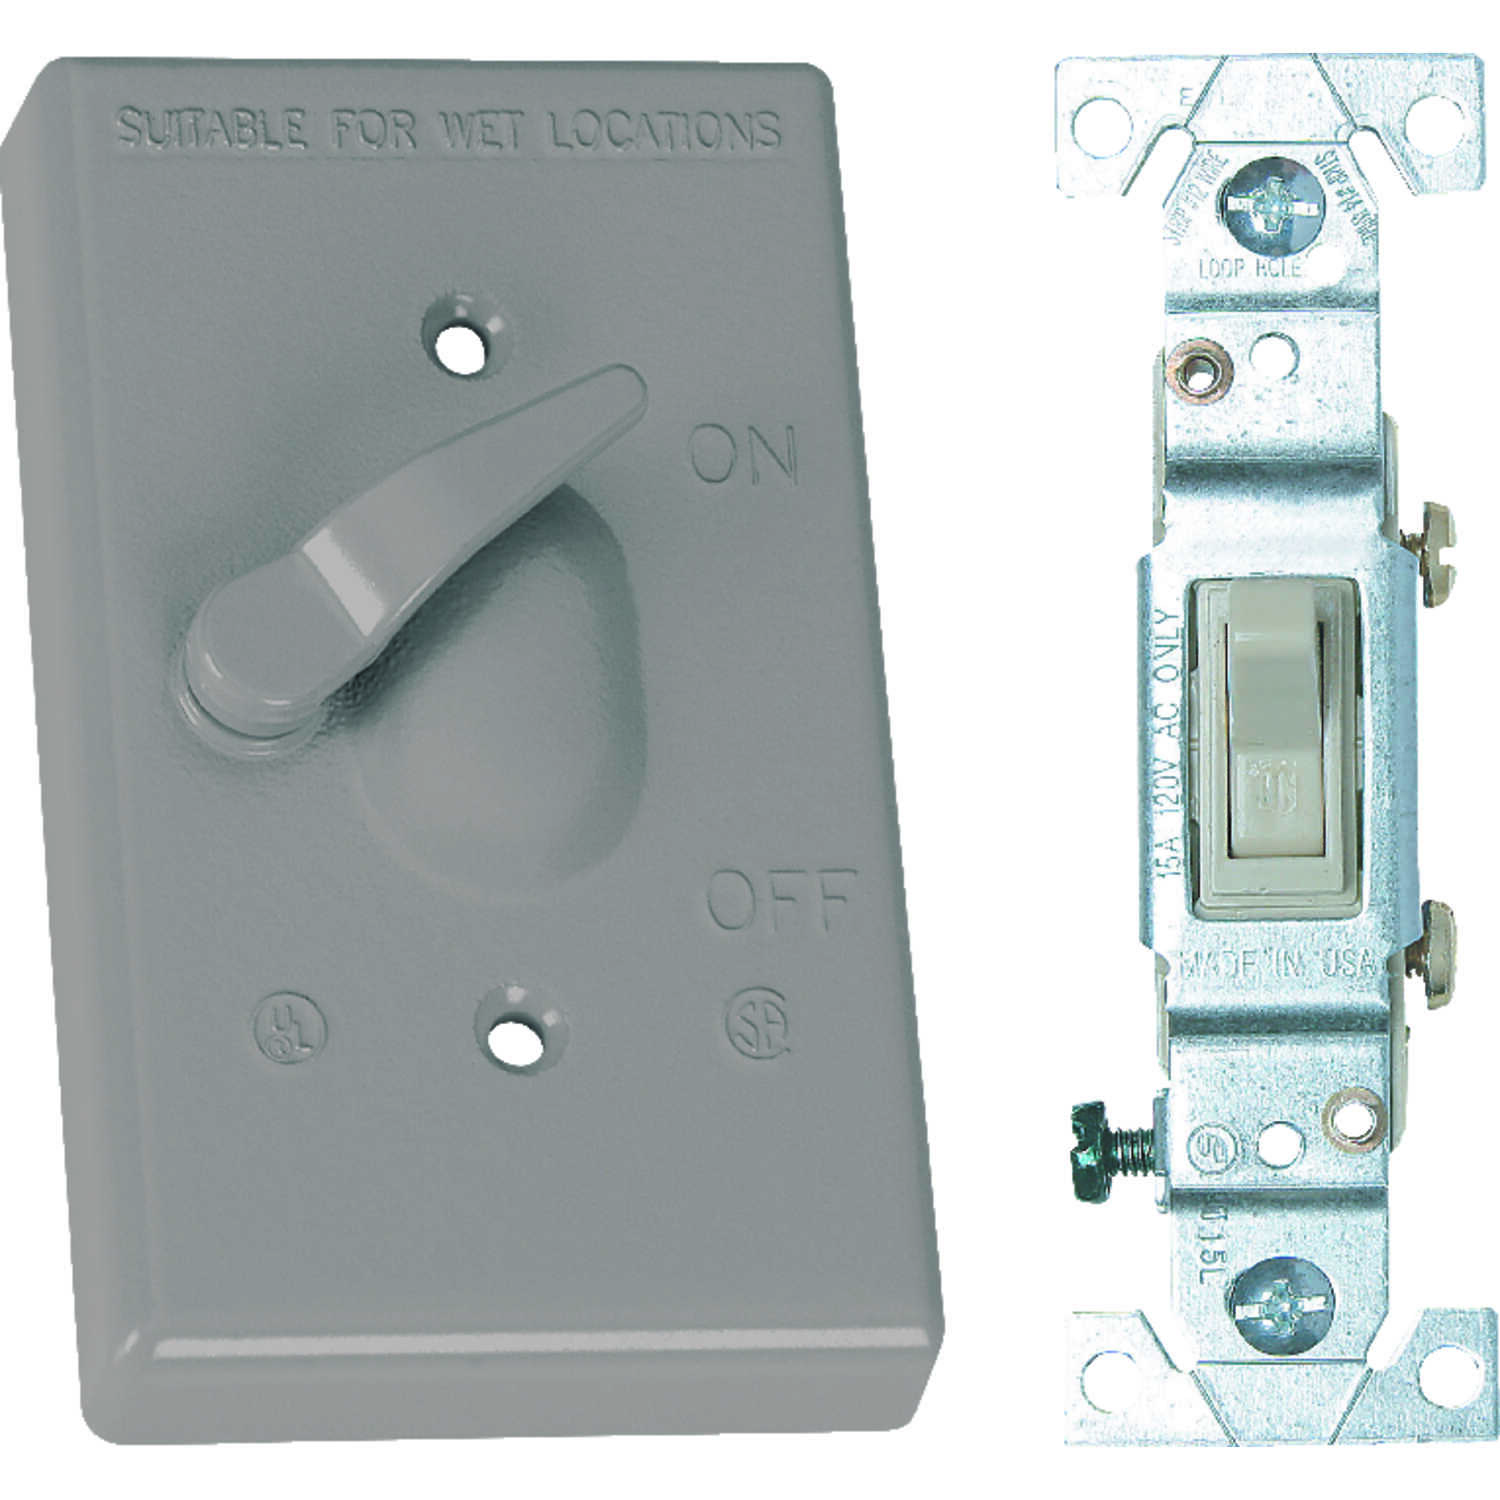 Sigma Electric  Rectangle  Metal  1 gang Toggle Switch and Cover  For Wet Locations 1 each Toggle